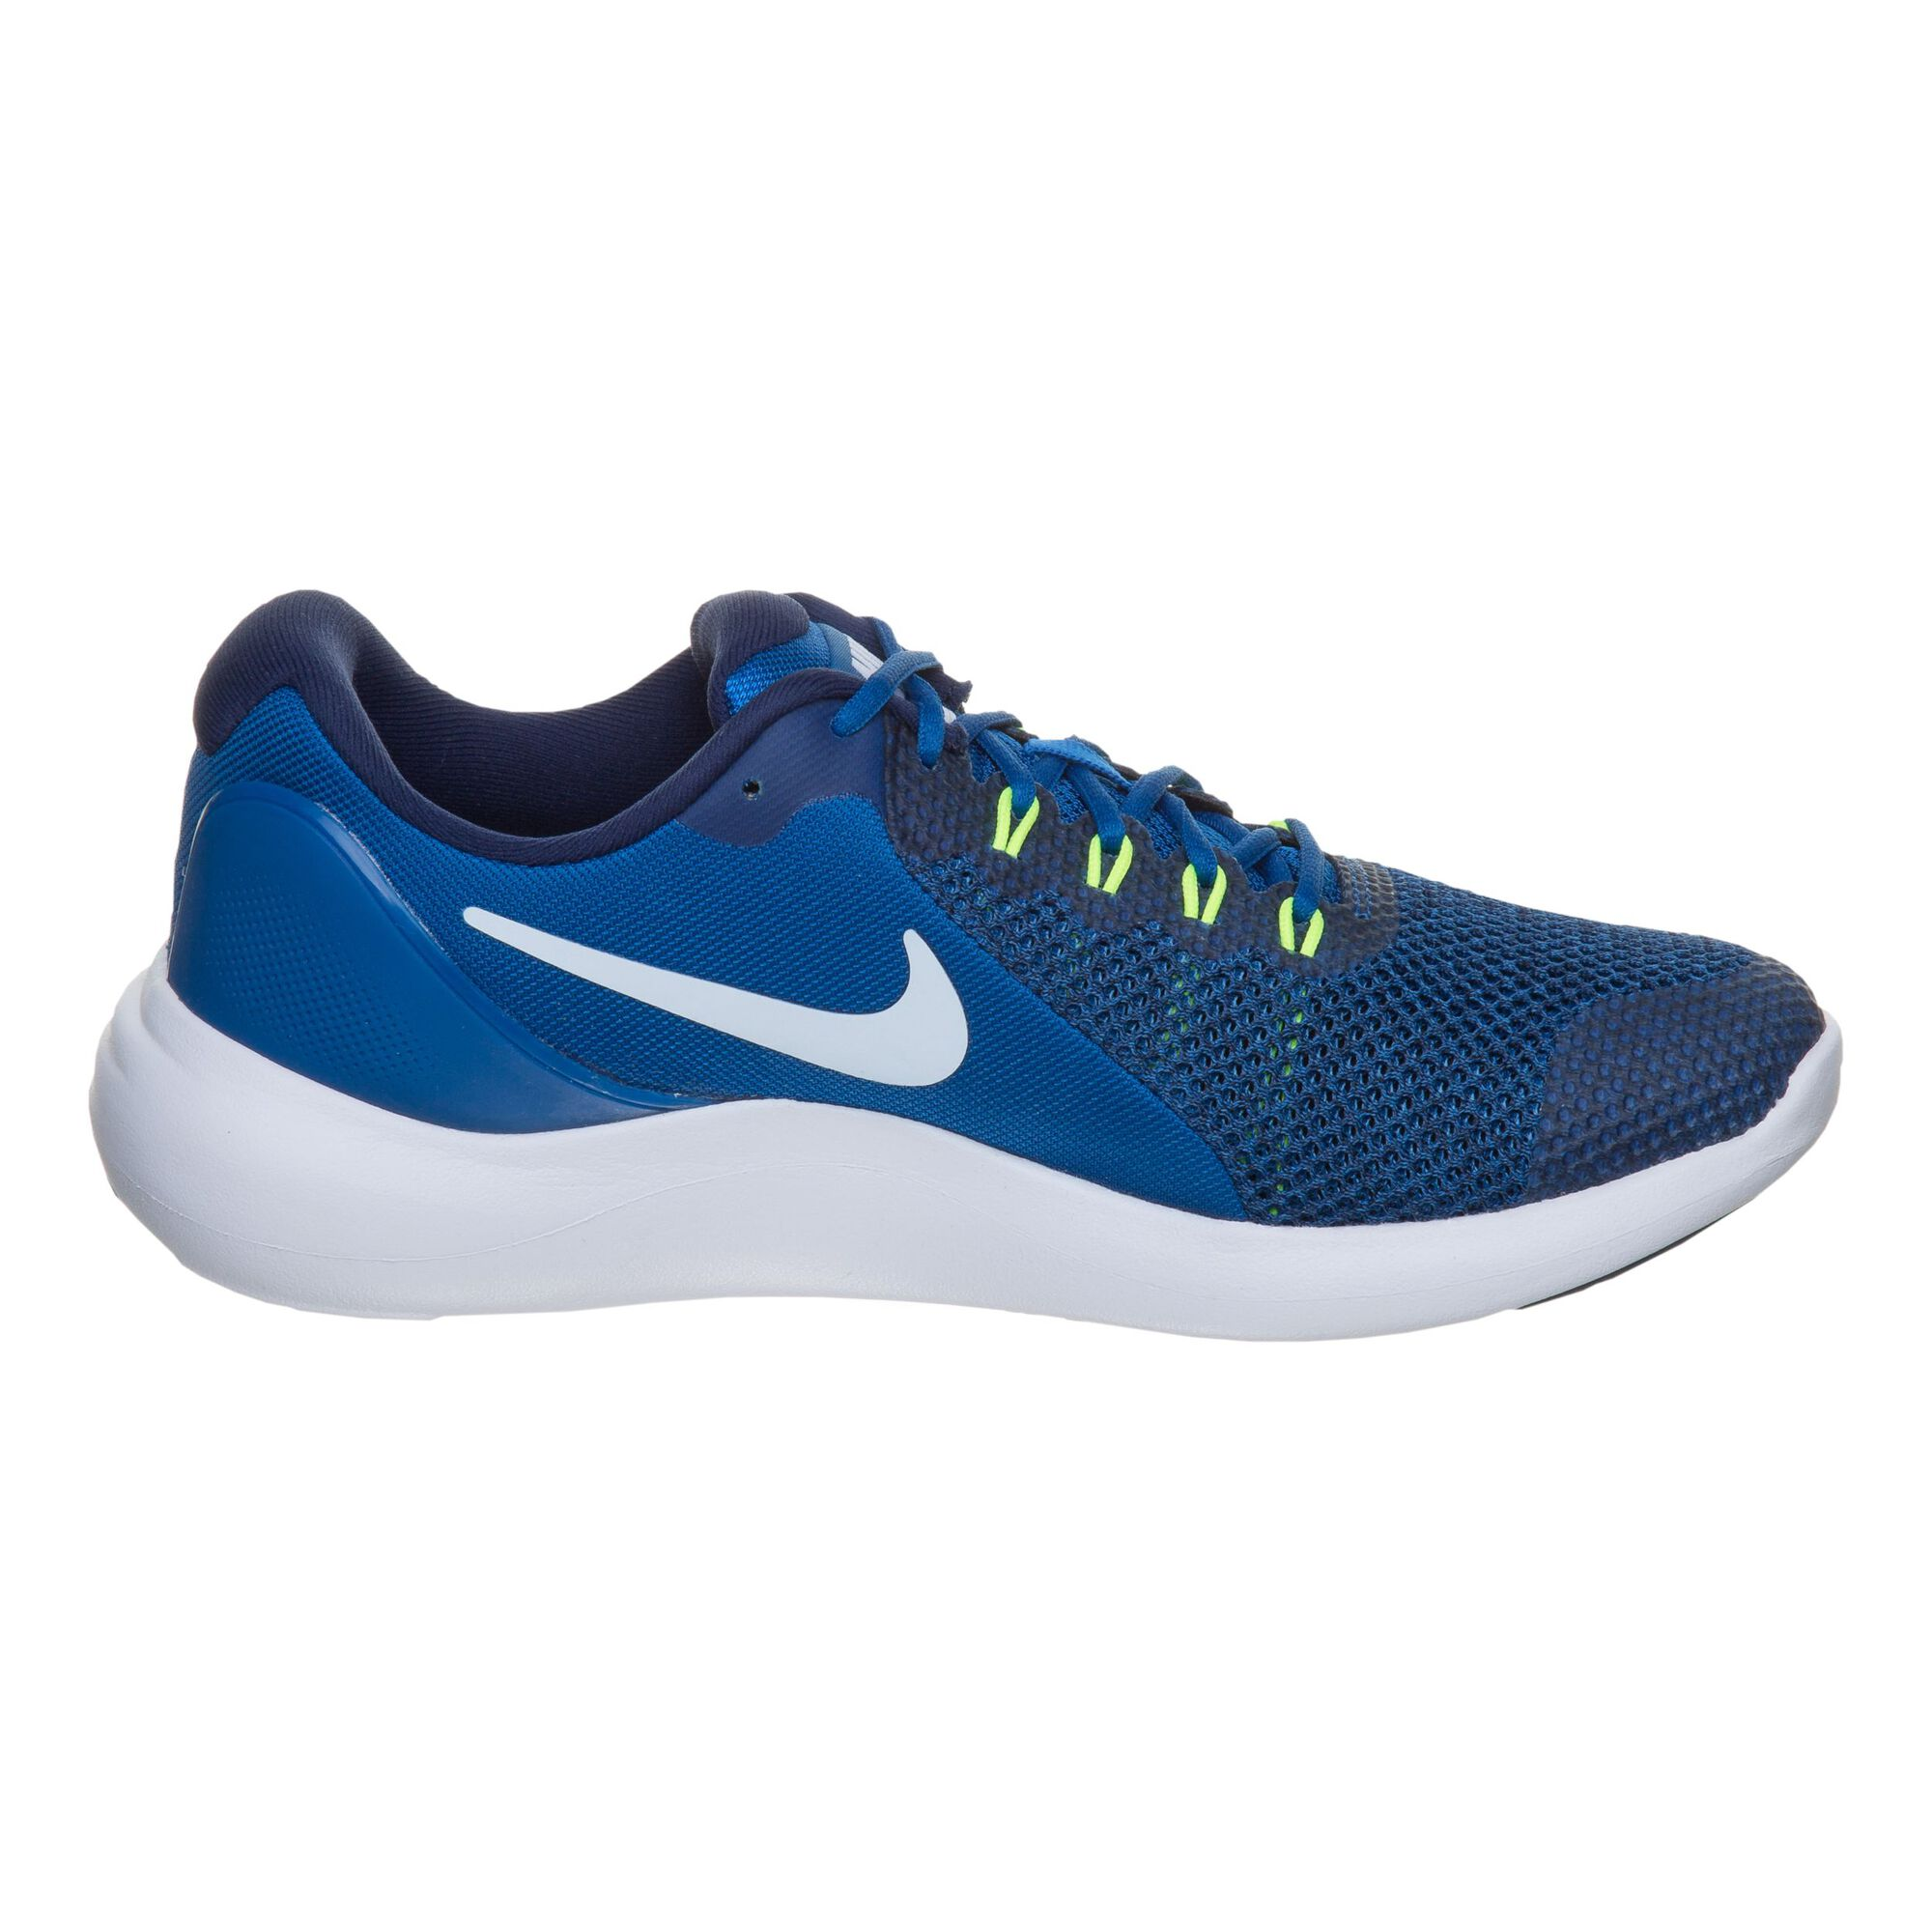 15490fd6c373 buy Nike Lunar Apparent Neutral Running Shoe Kids - Blue